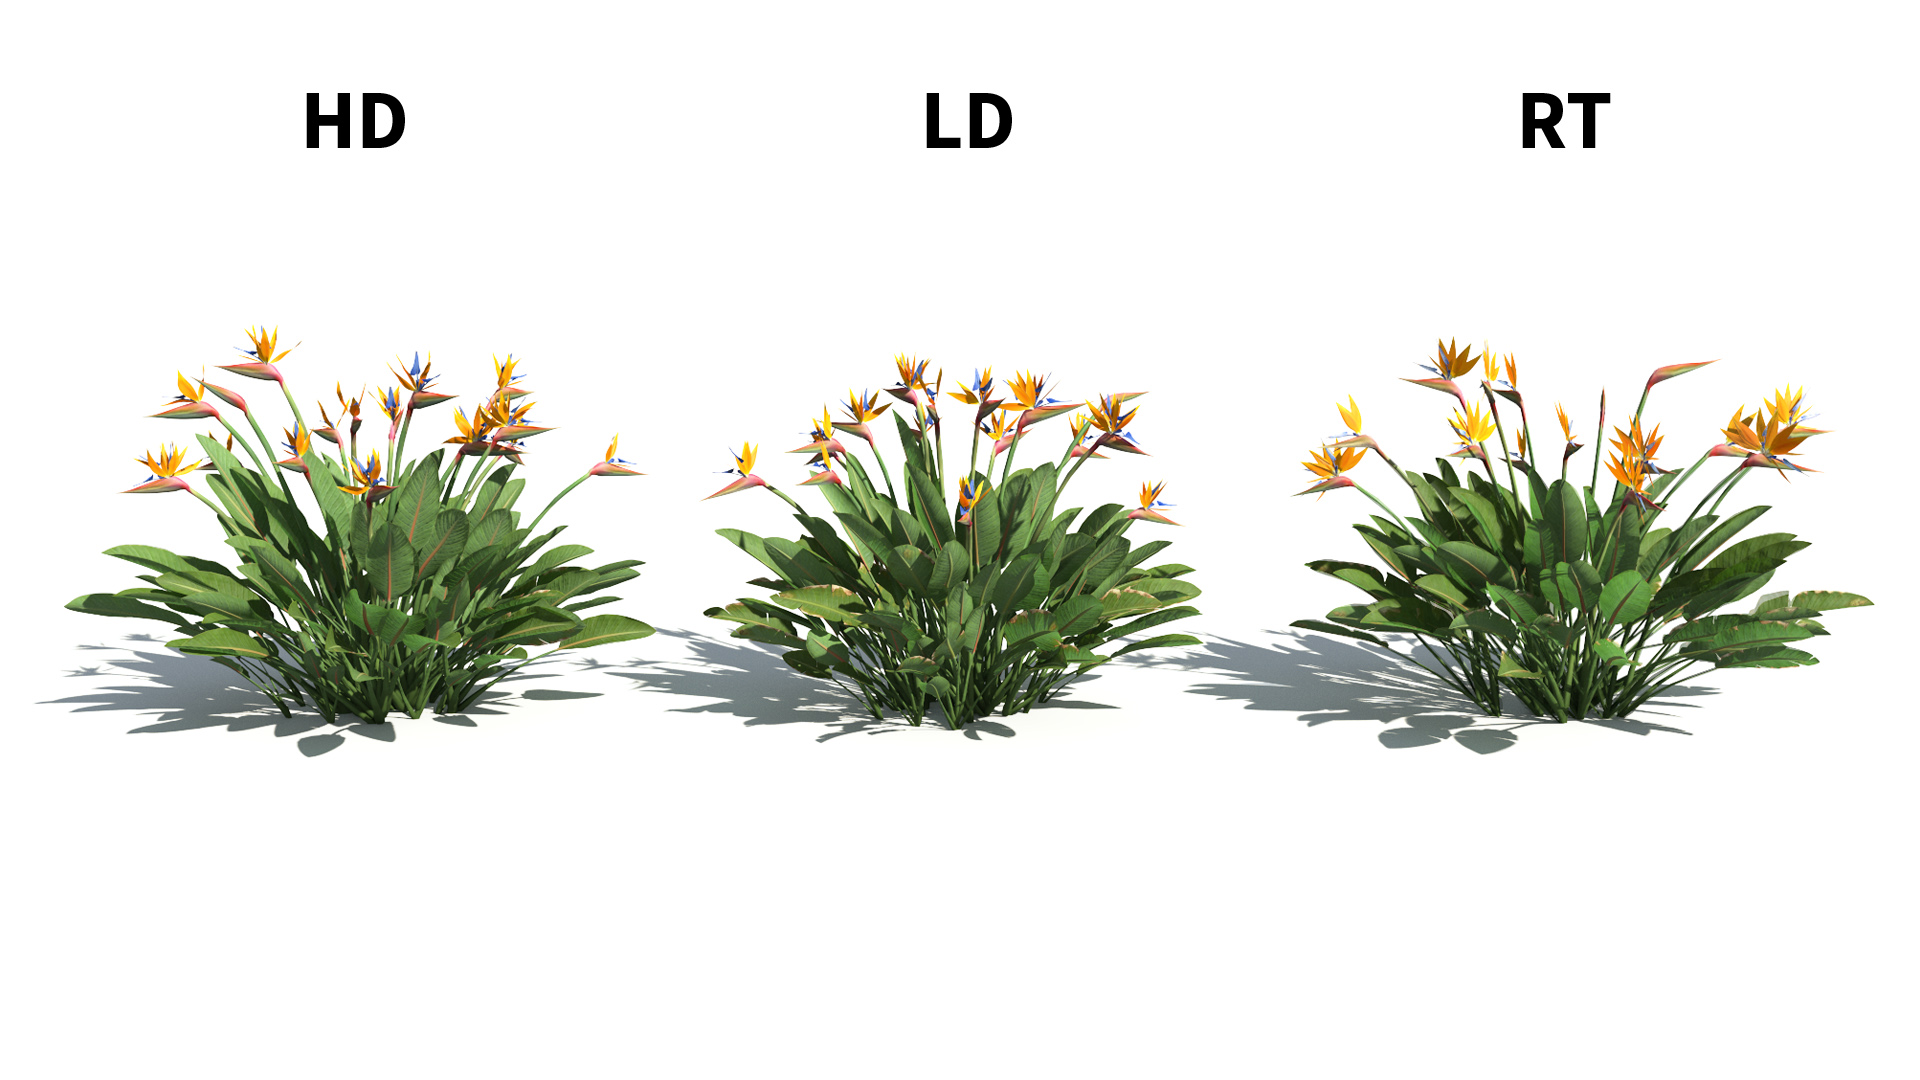 3D model of the Narrow leaved bird of paradise Strelitzia juncea included versions